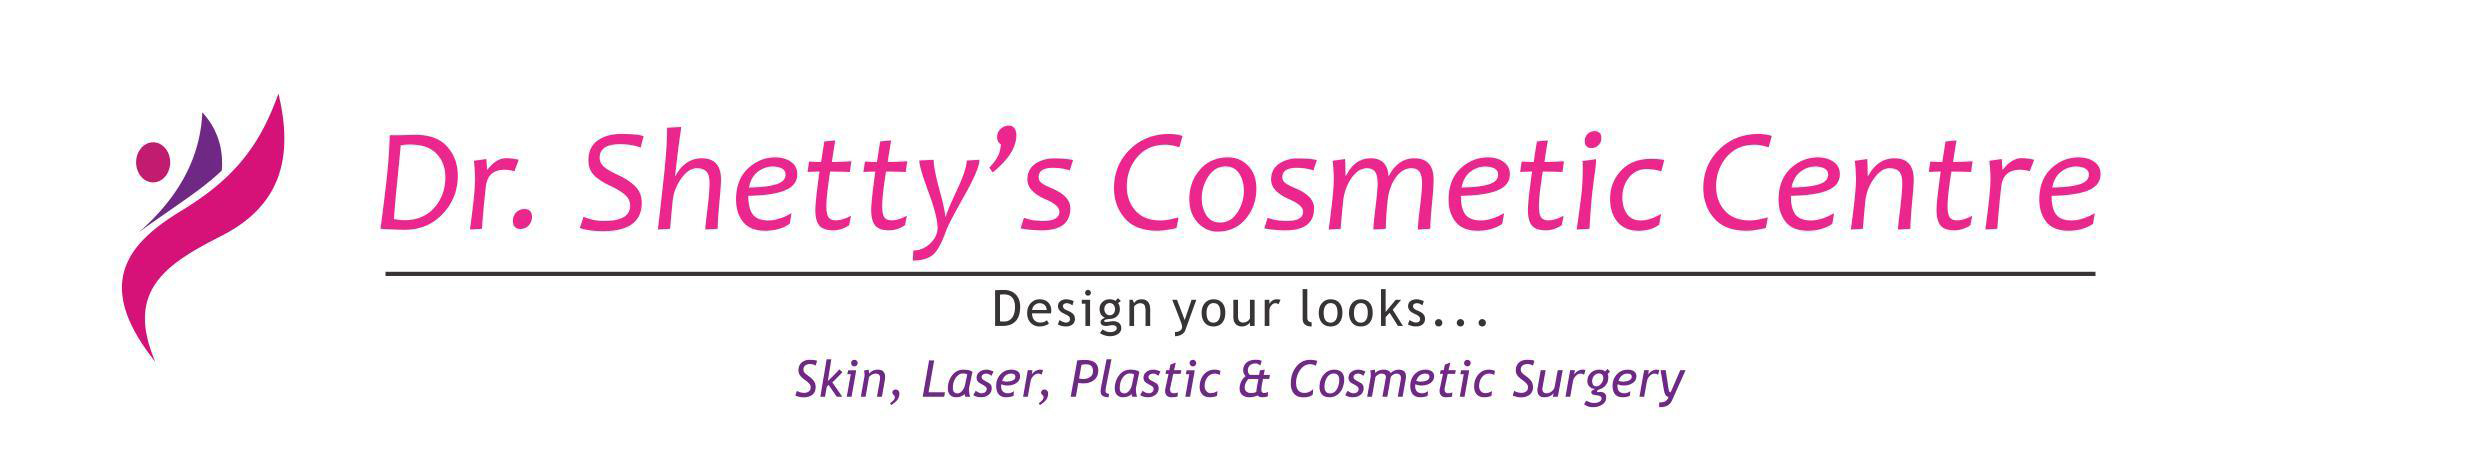 Dr. Shetty's Cosmetic Centre | Lybrate.com